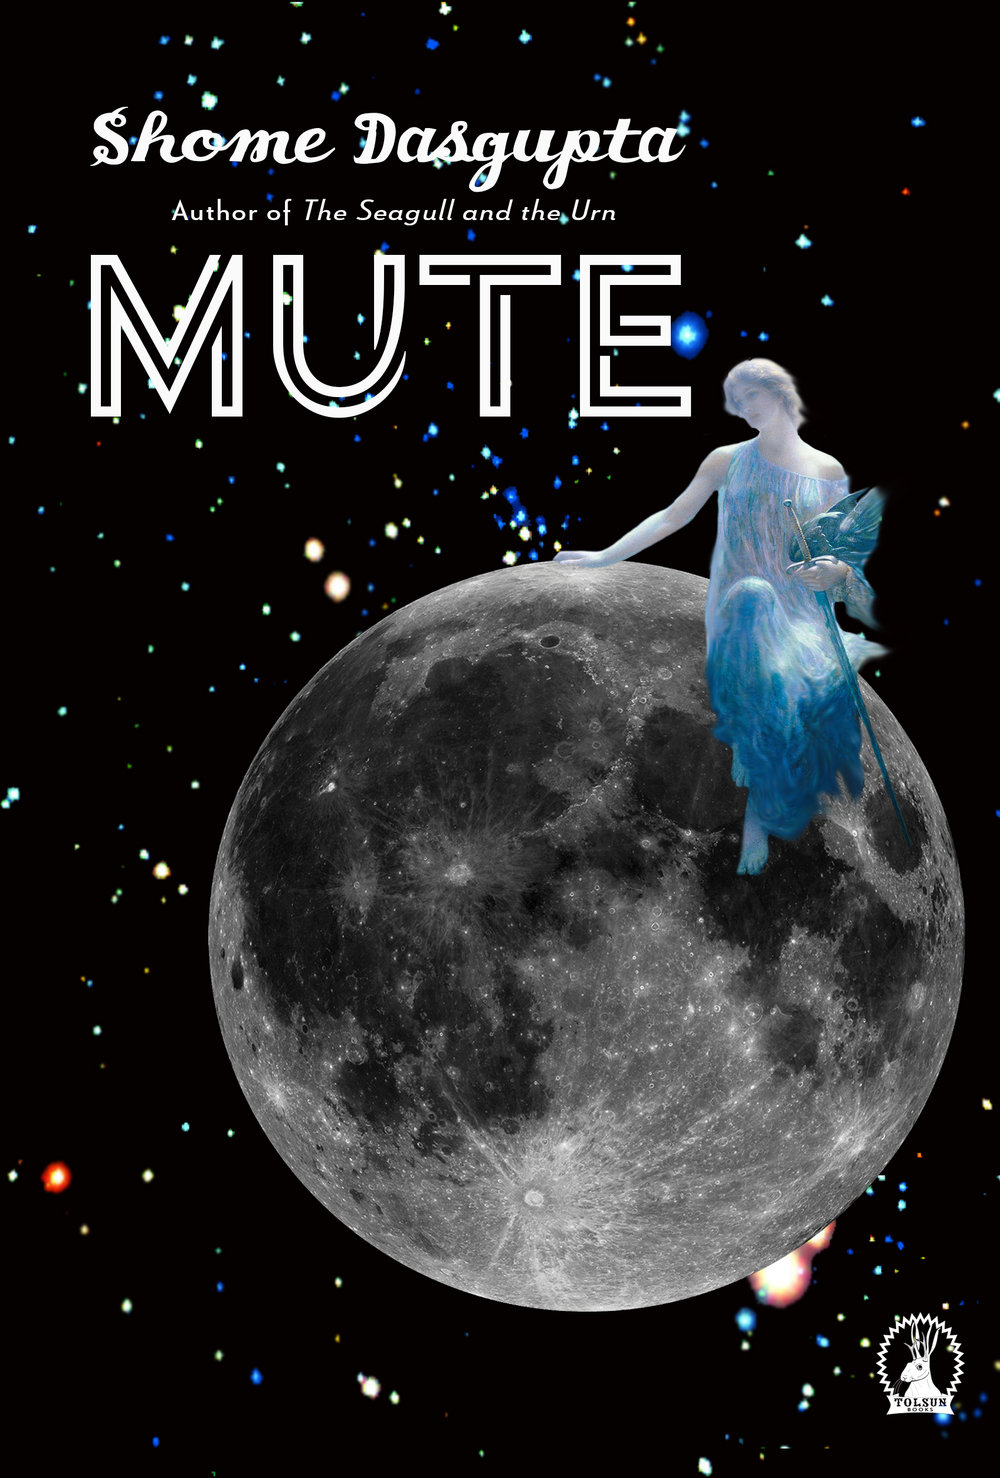 Mute by Shome Dasgupta - Release Date September 12th, 2018